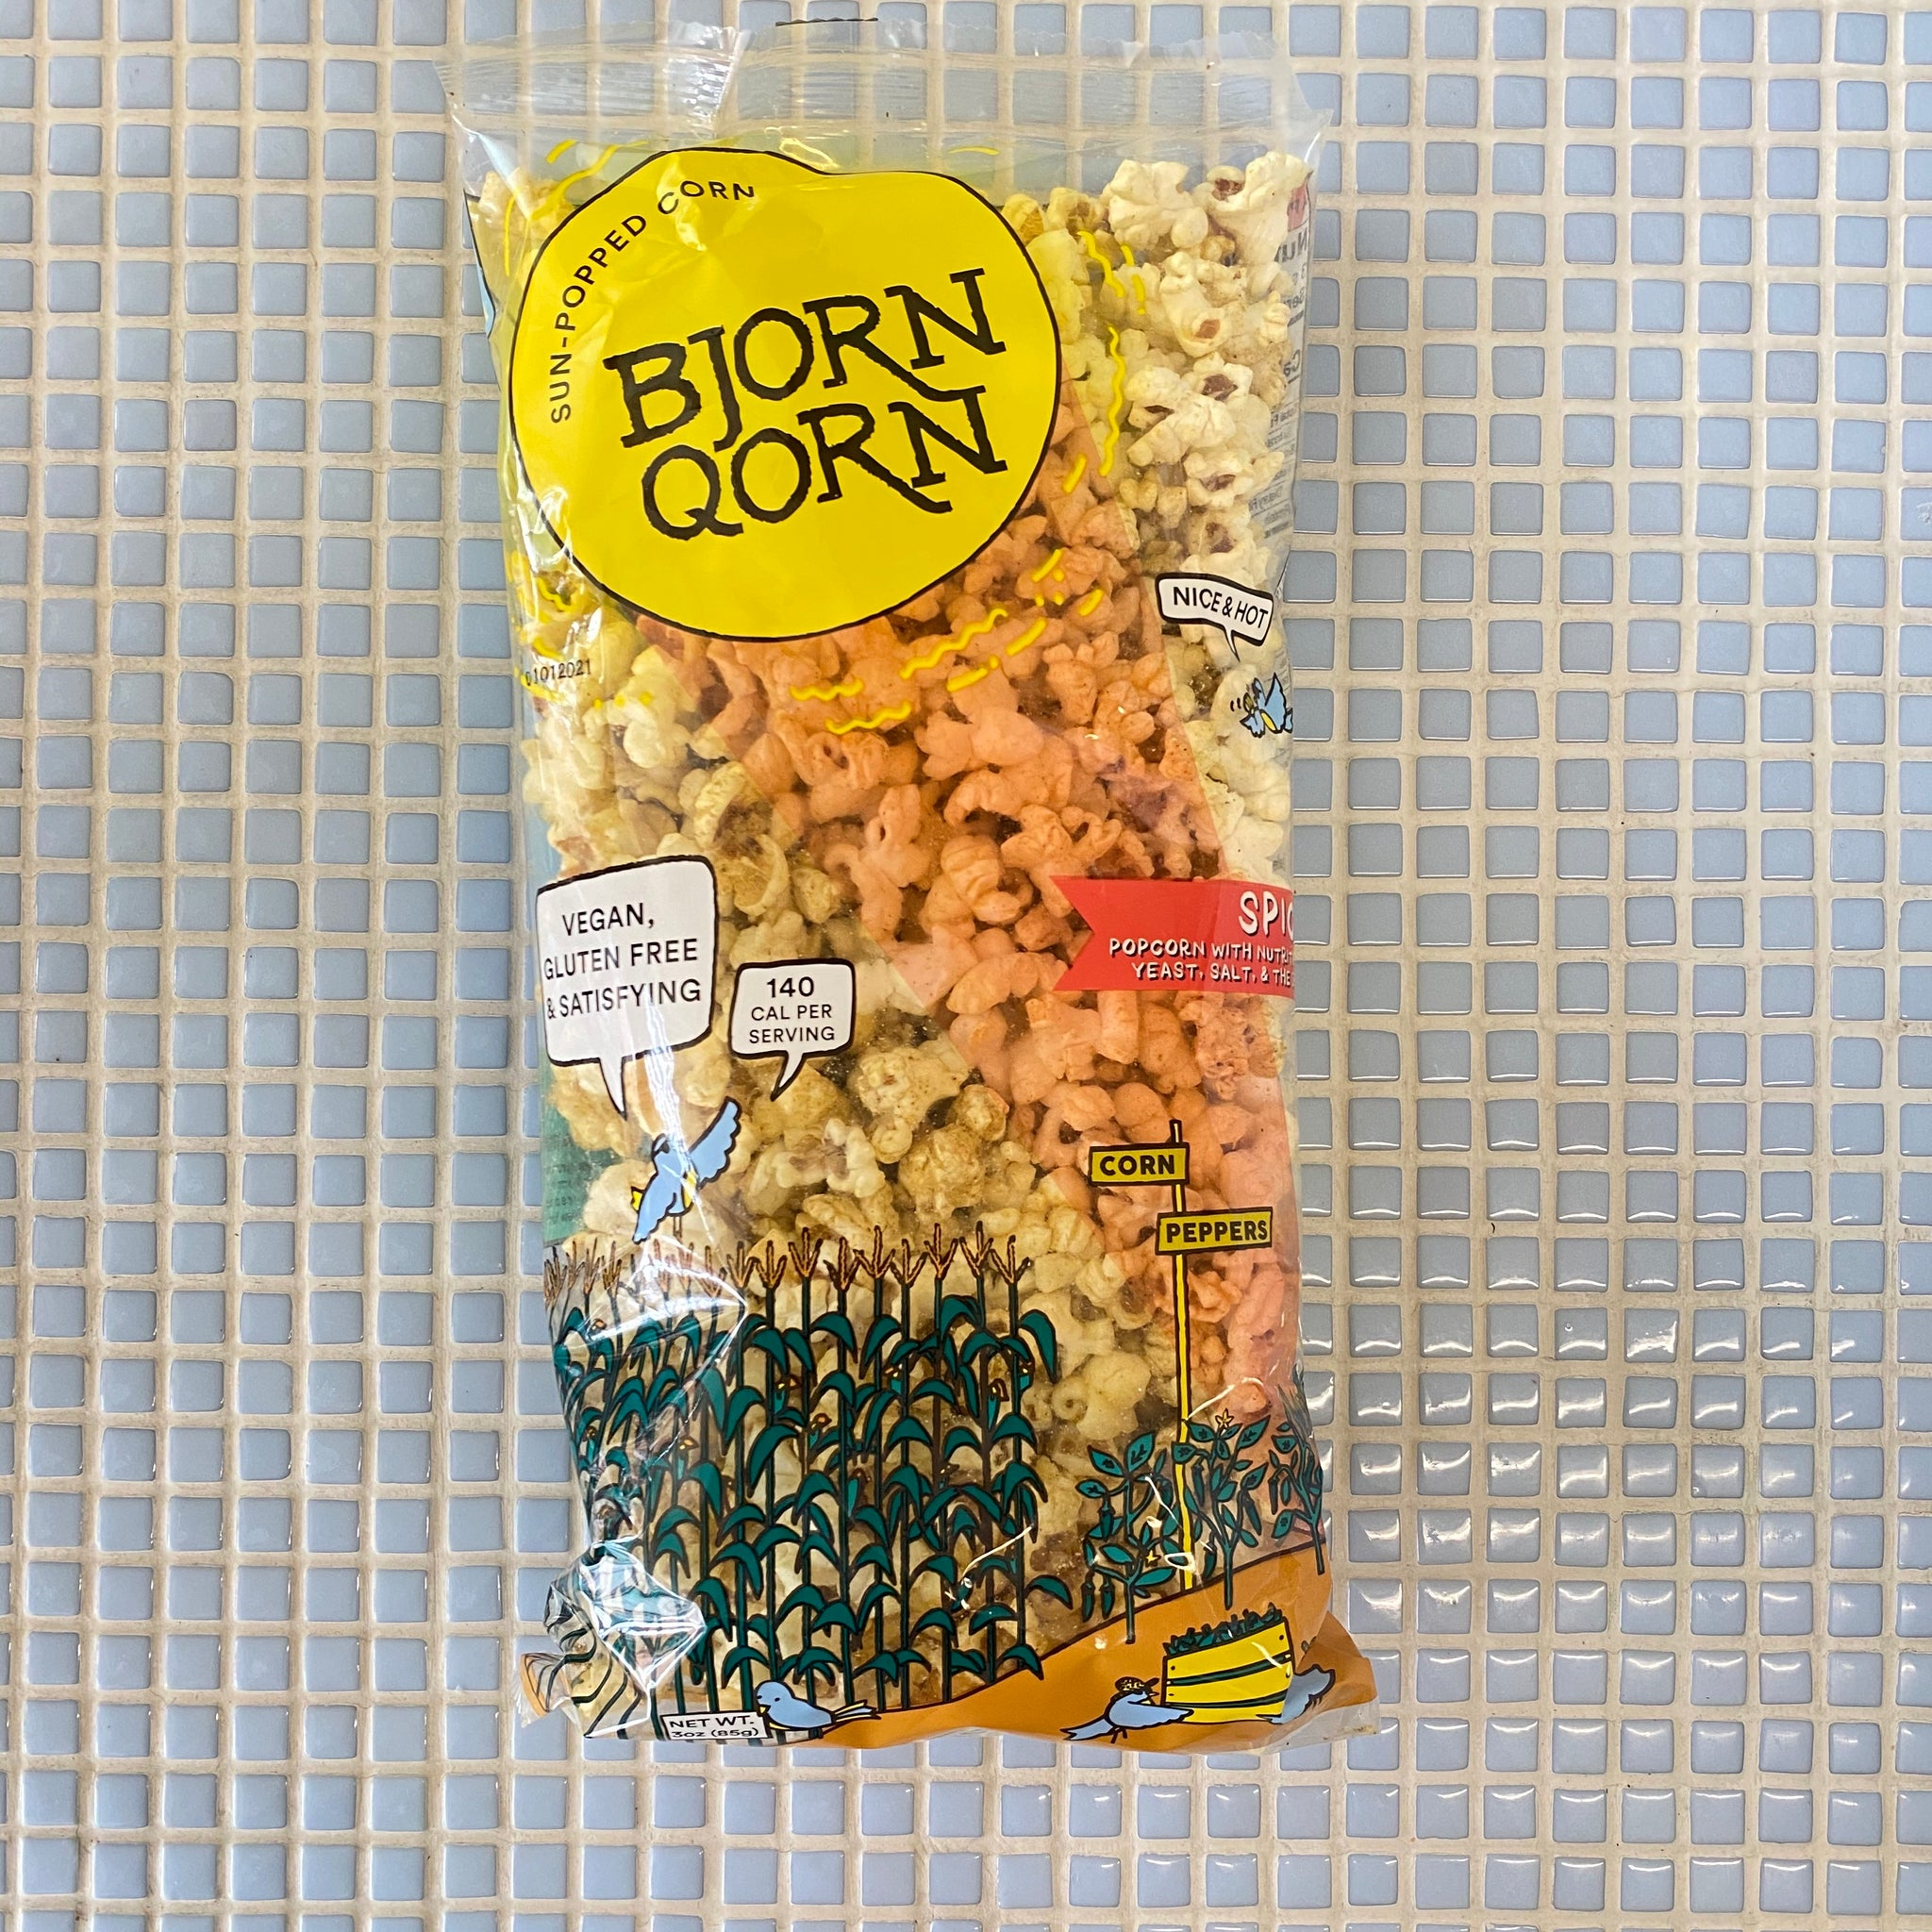 bjorn qorn spicy pop corn with nutritional yeast and salt and spice